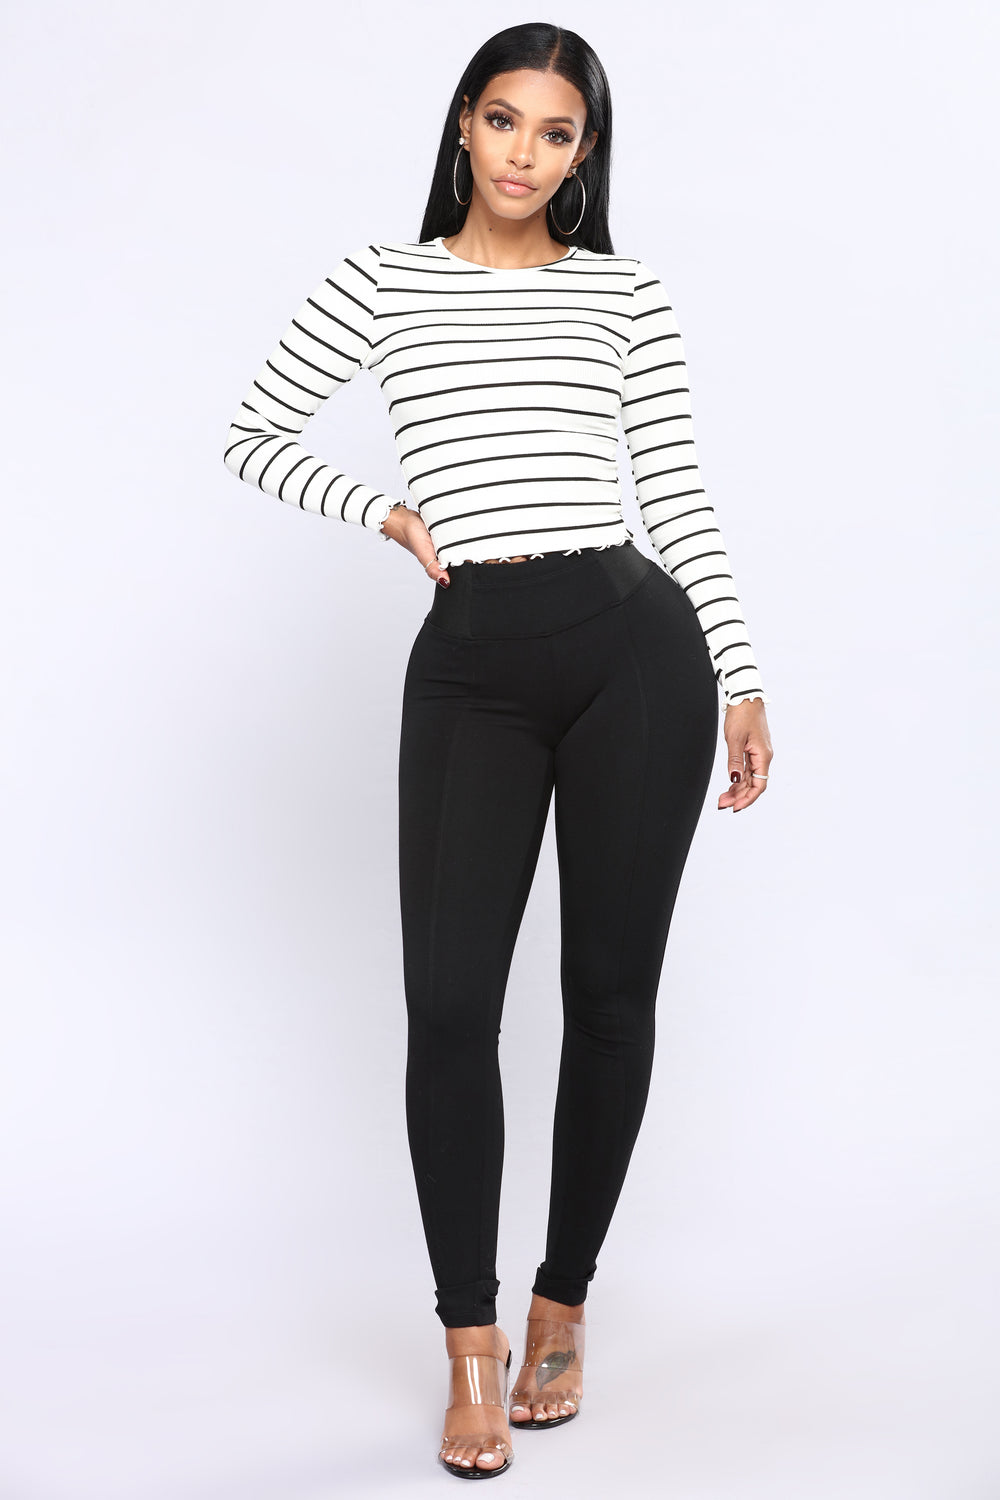 Bring It All Back Striped Top - White/Black